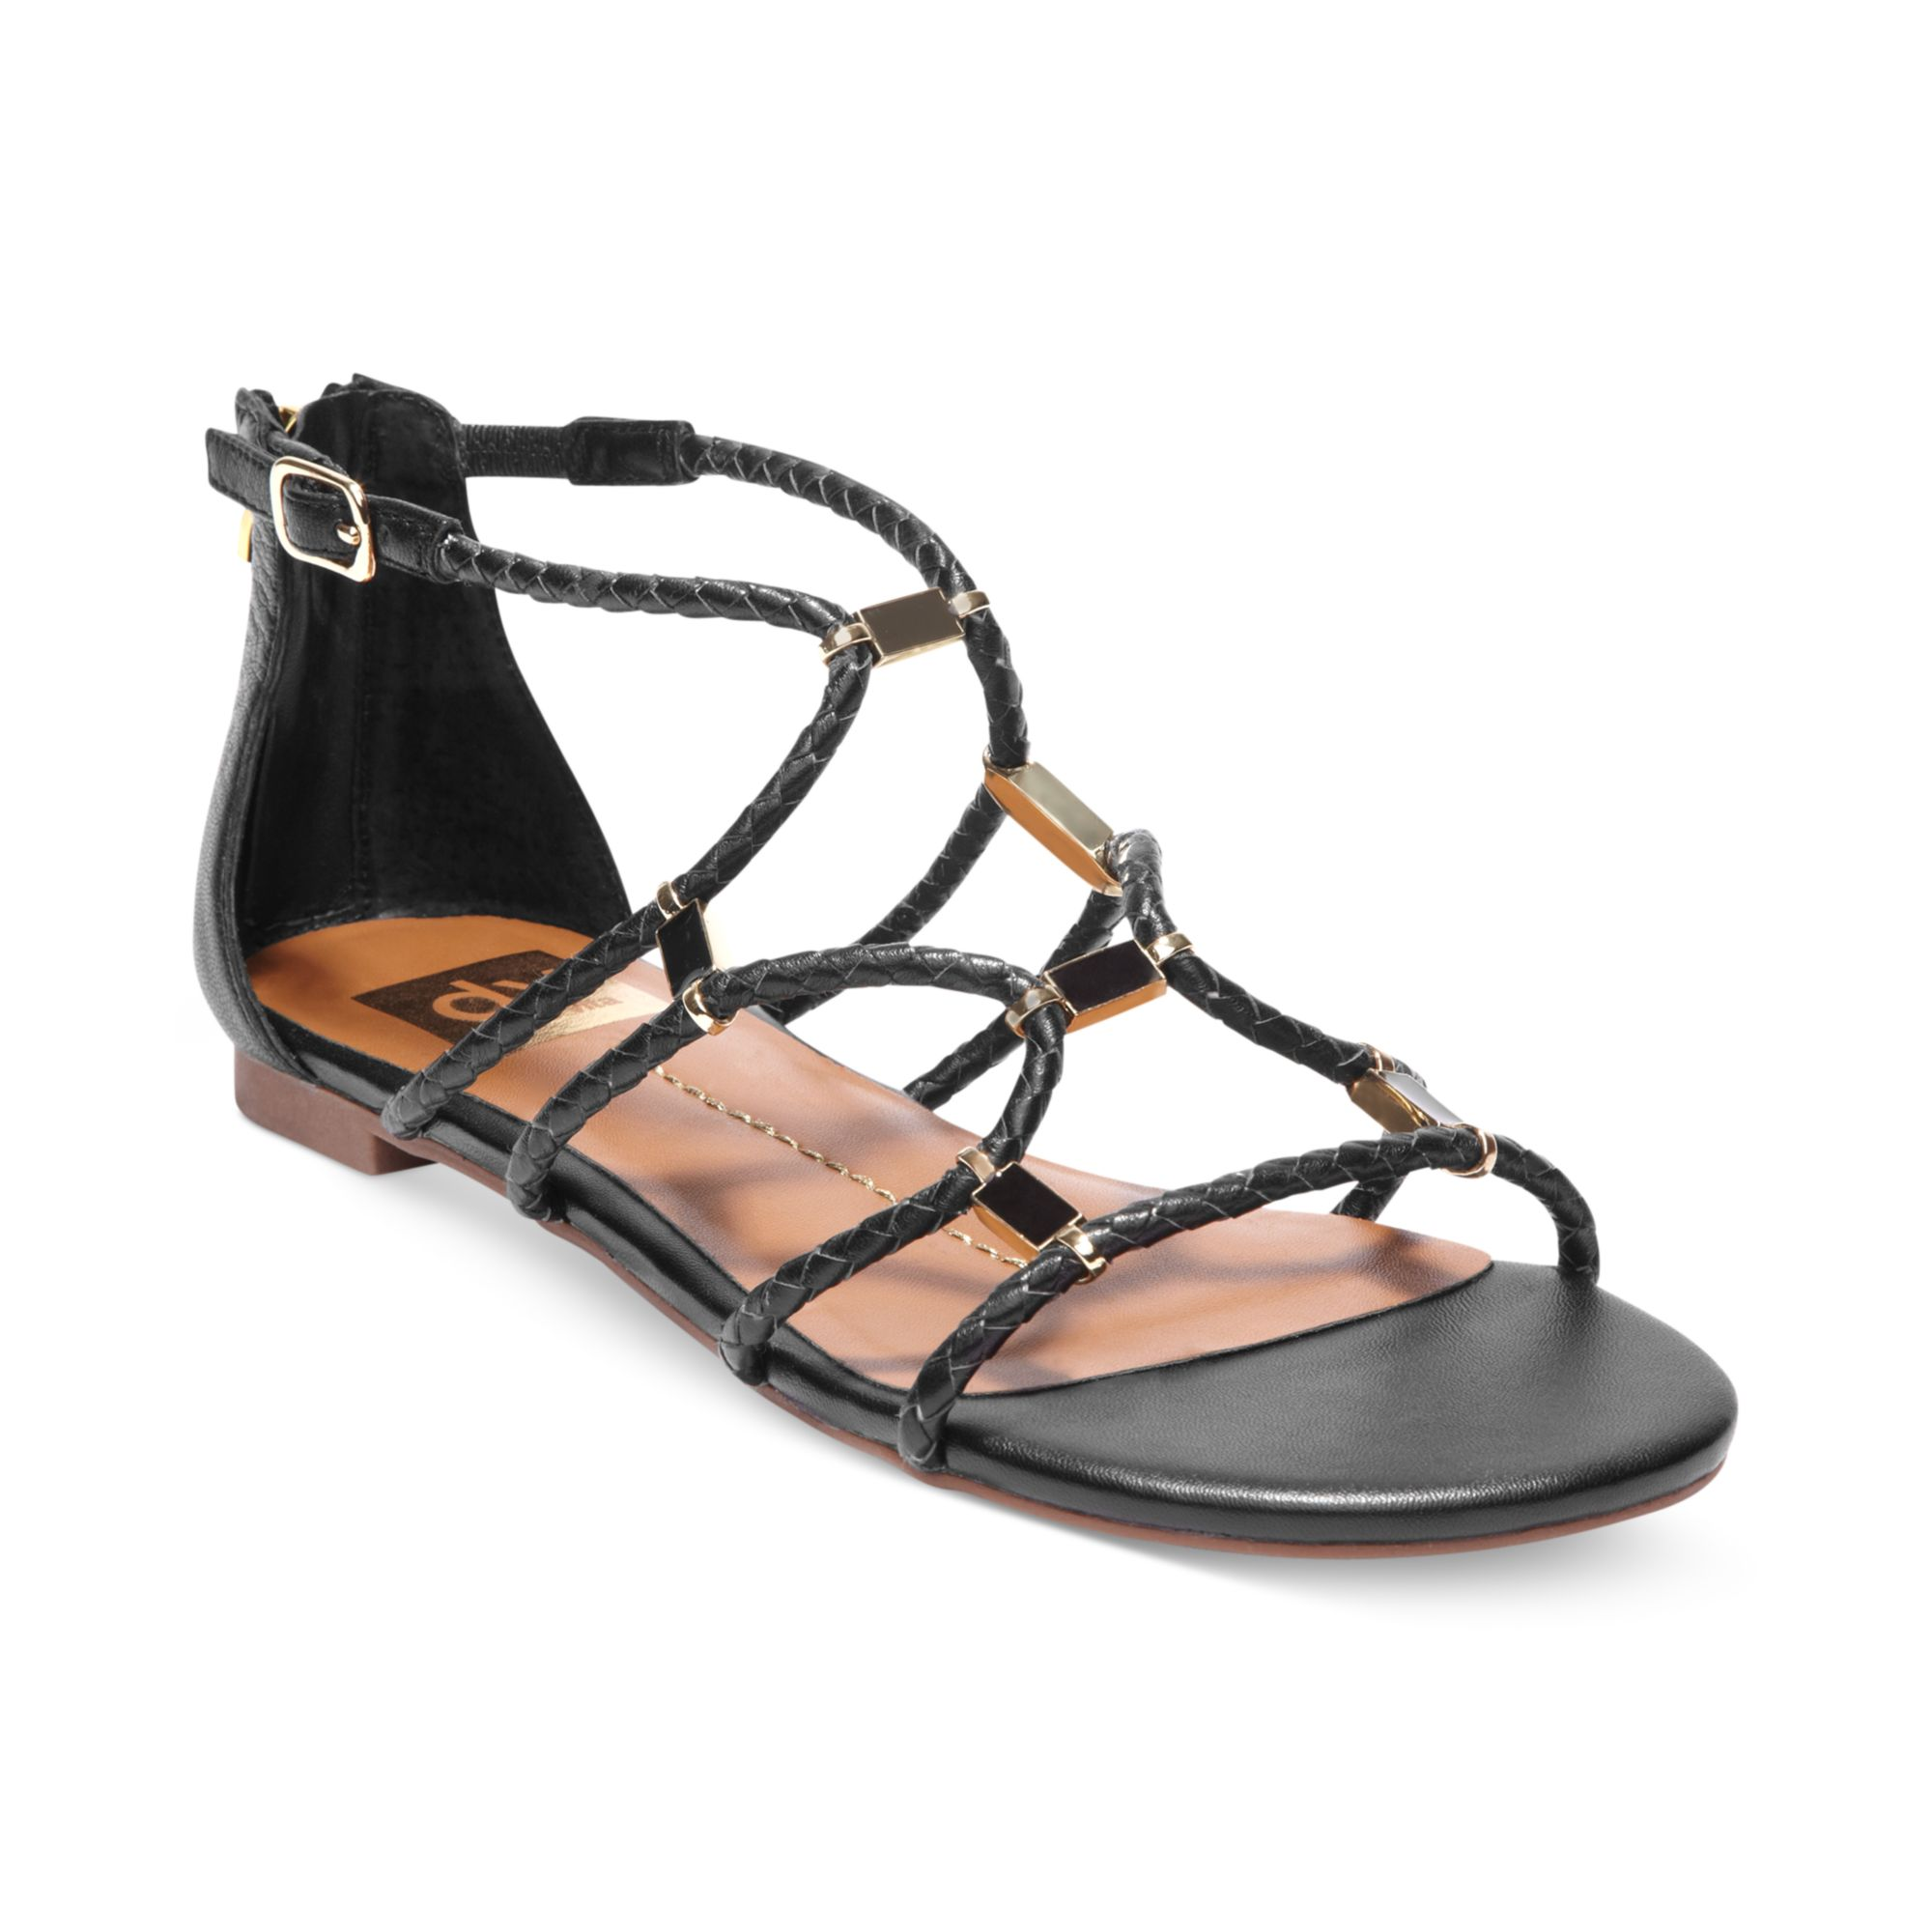 Find black strappy flats at ShopStyle. Shop the latest collection of black strappy flats from the most popular stores - all in one place.